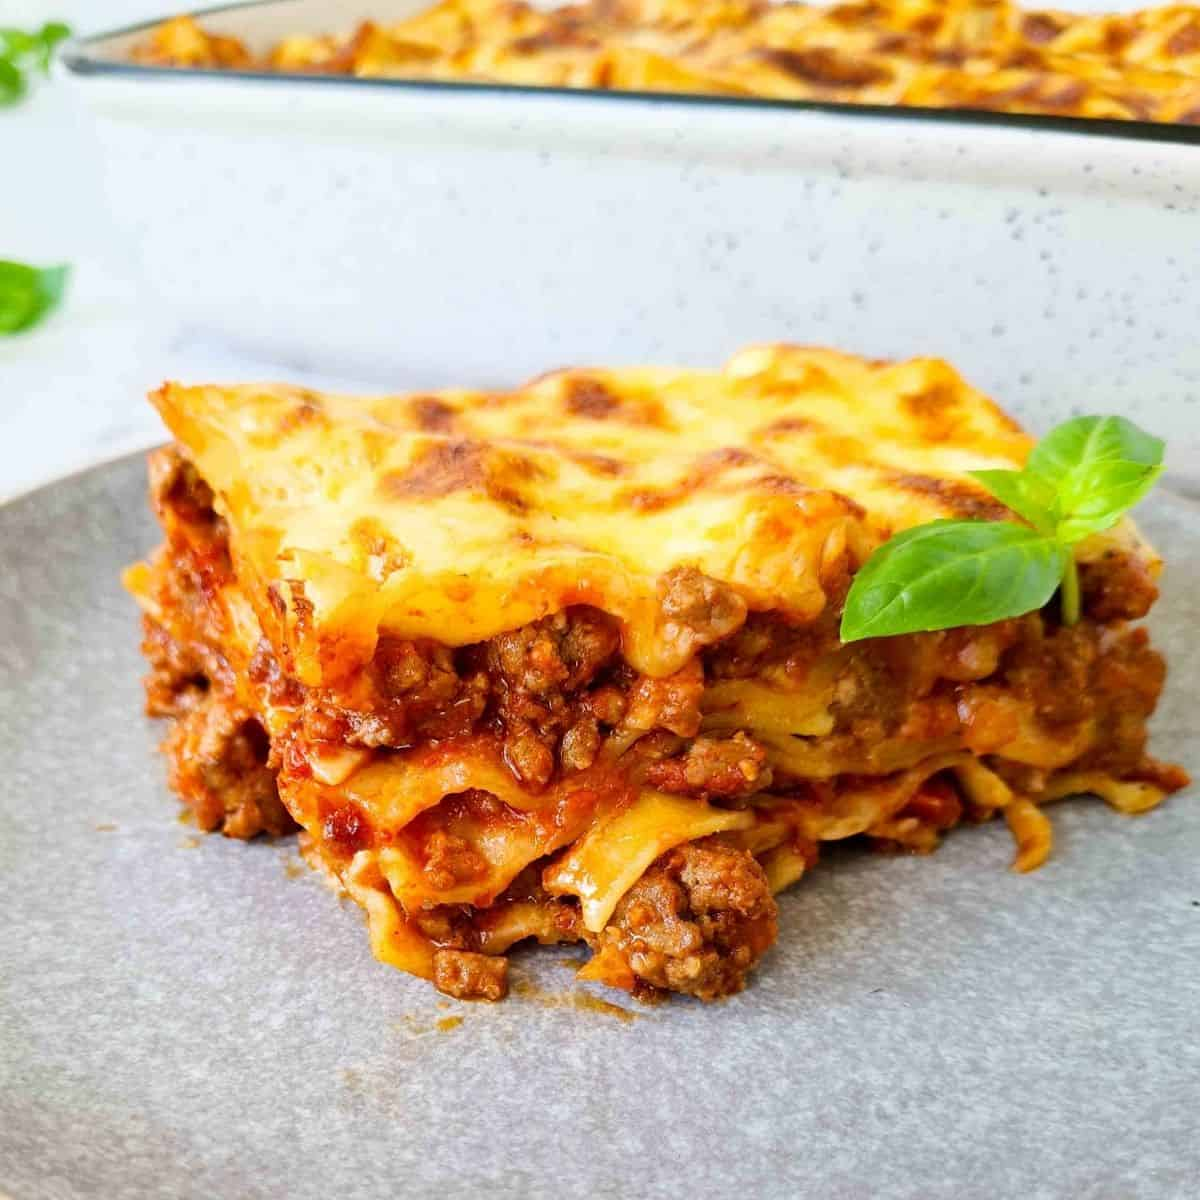 Side view of a slice of lasagna, showing all 4 layers with lots of chunky meaty bolognese in each layer.